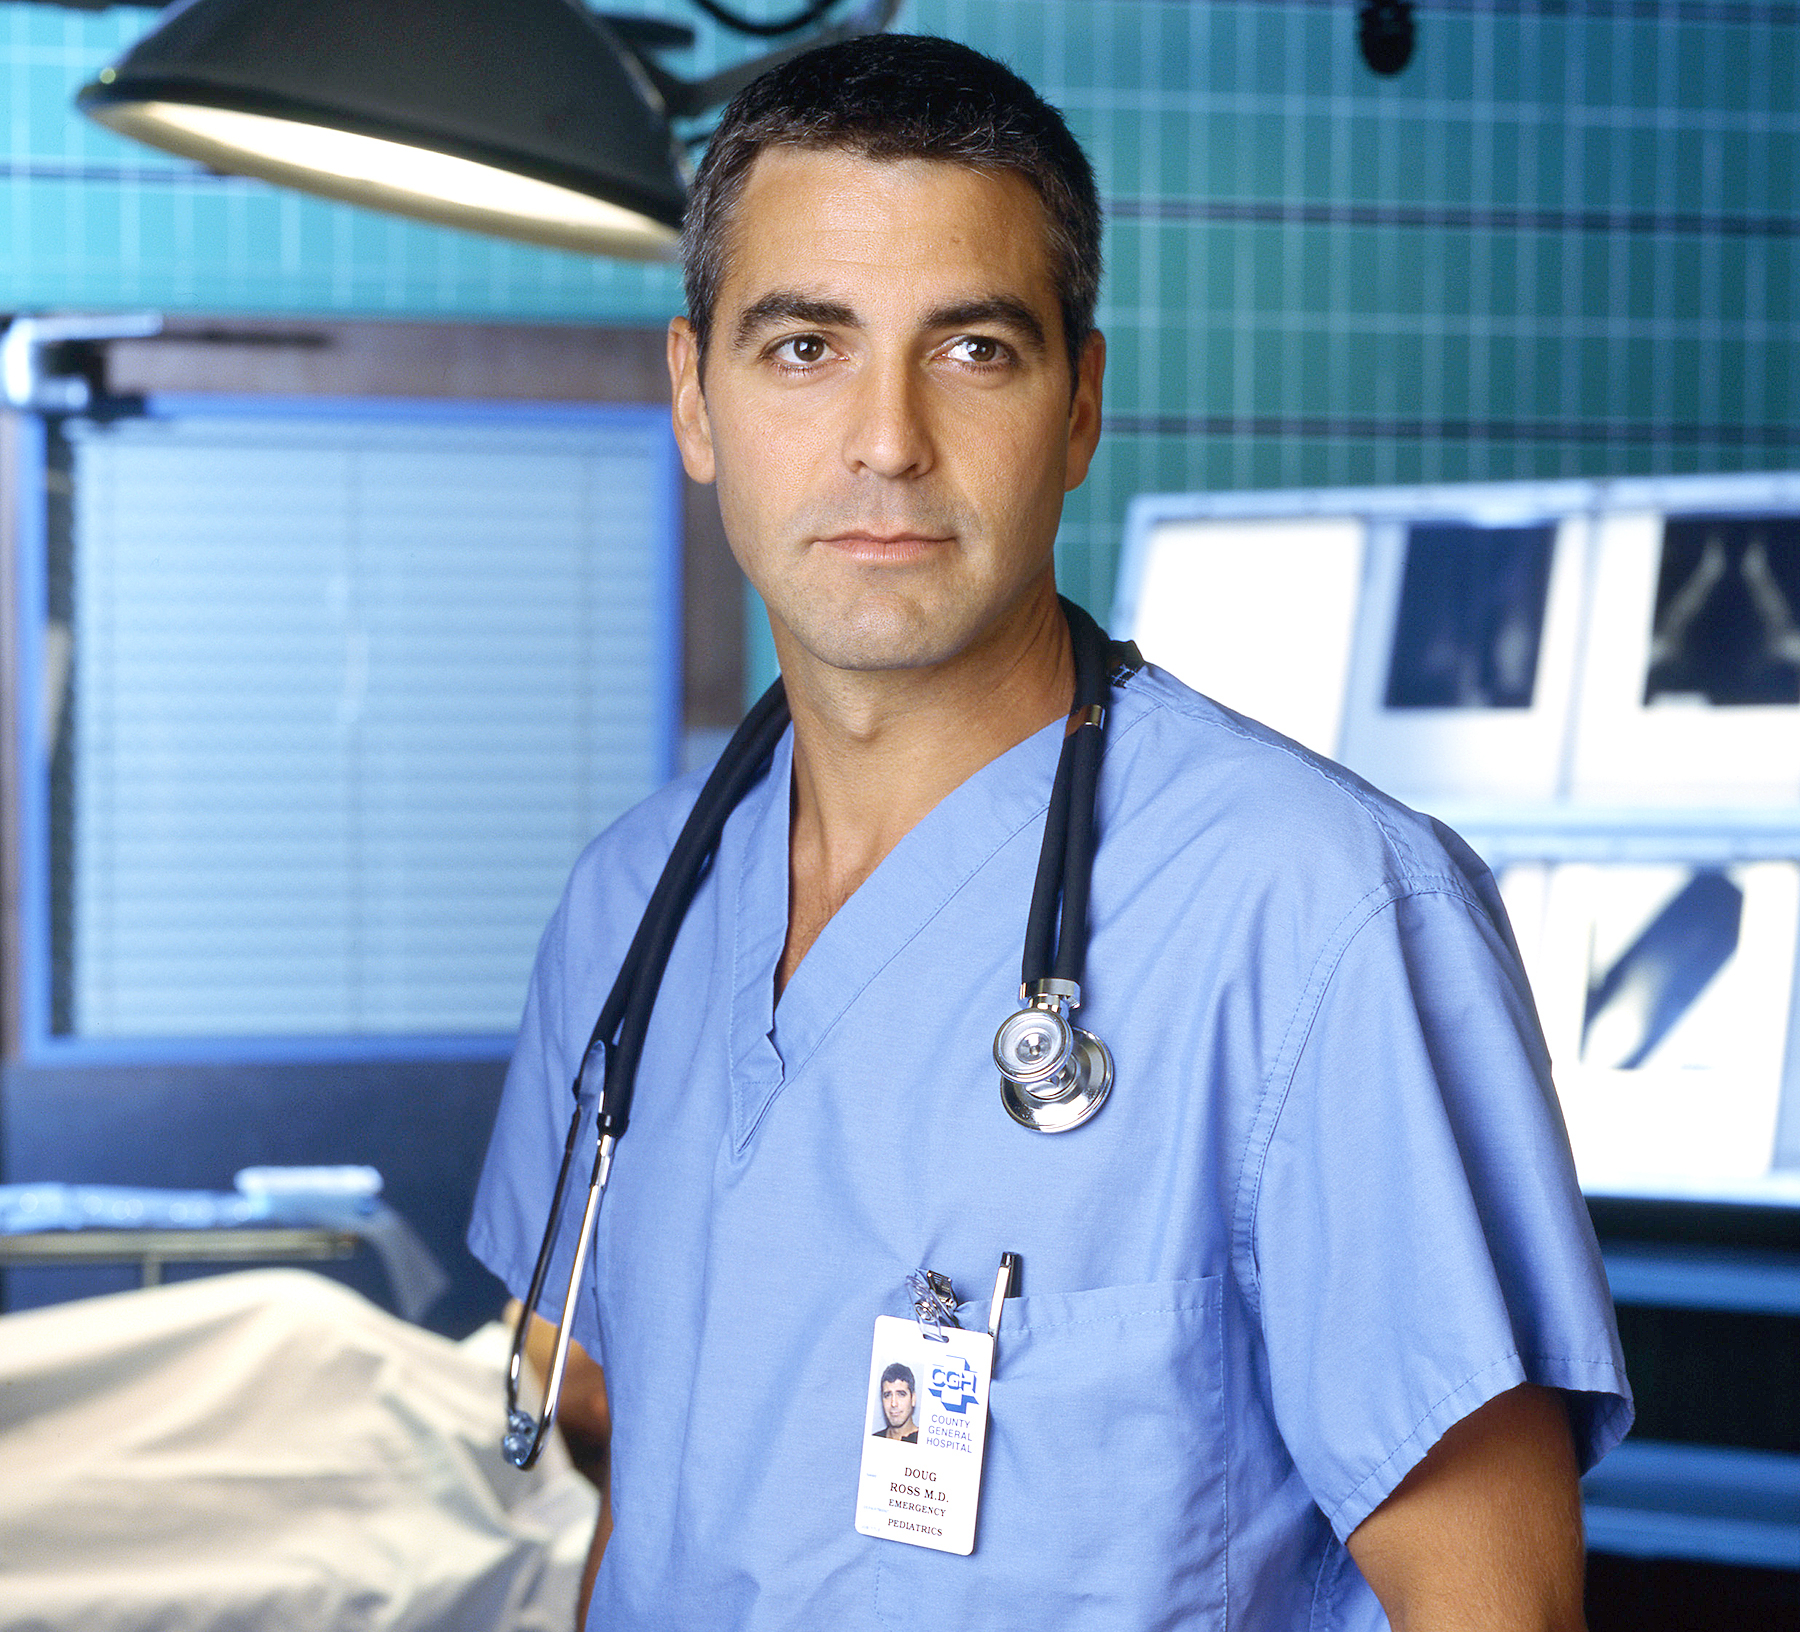 George Clooney as Dr. Doug Ross on ER.